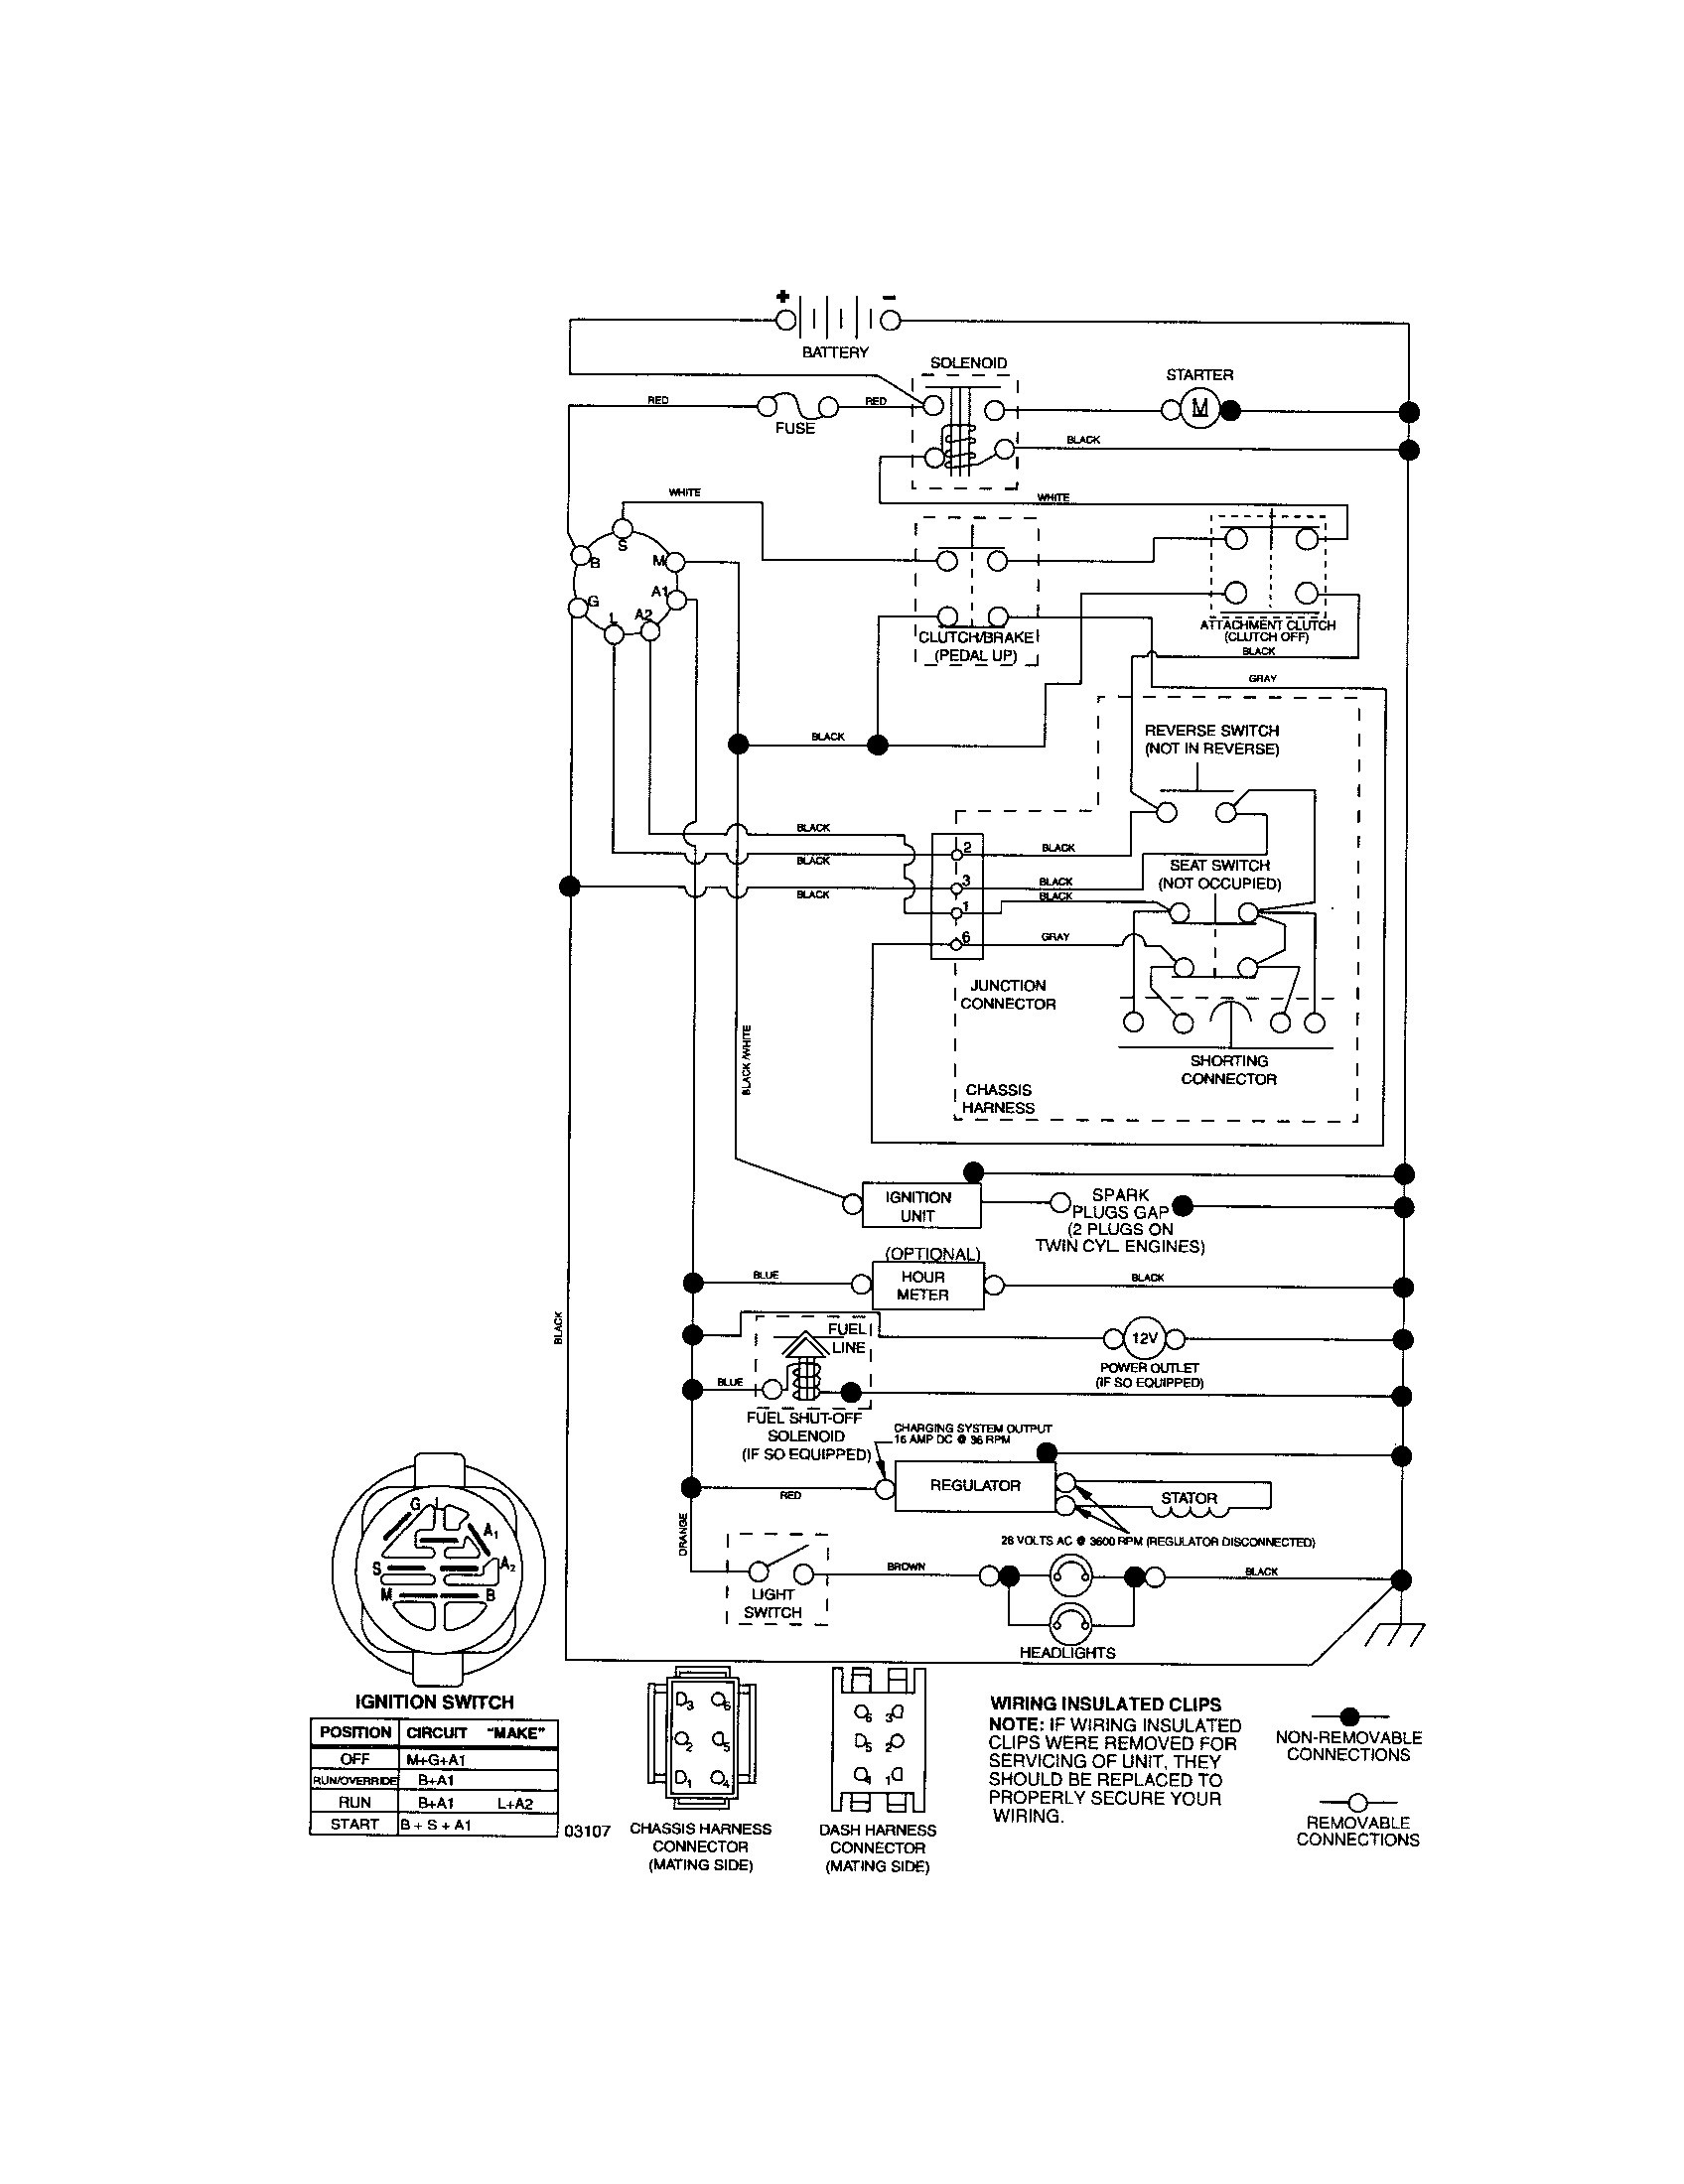 Craftsman Pto Switch Wiring Diagram Sample